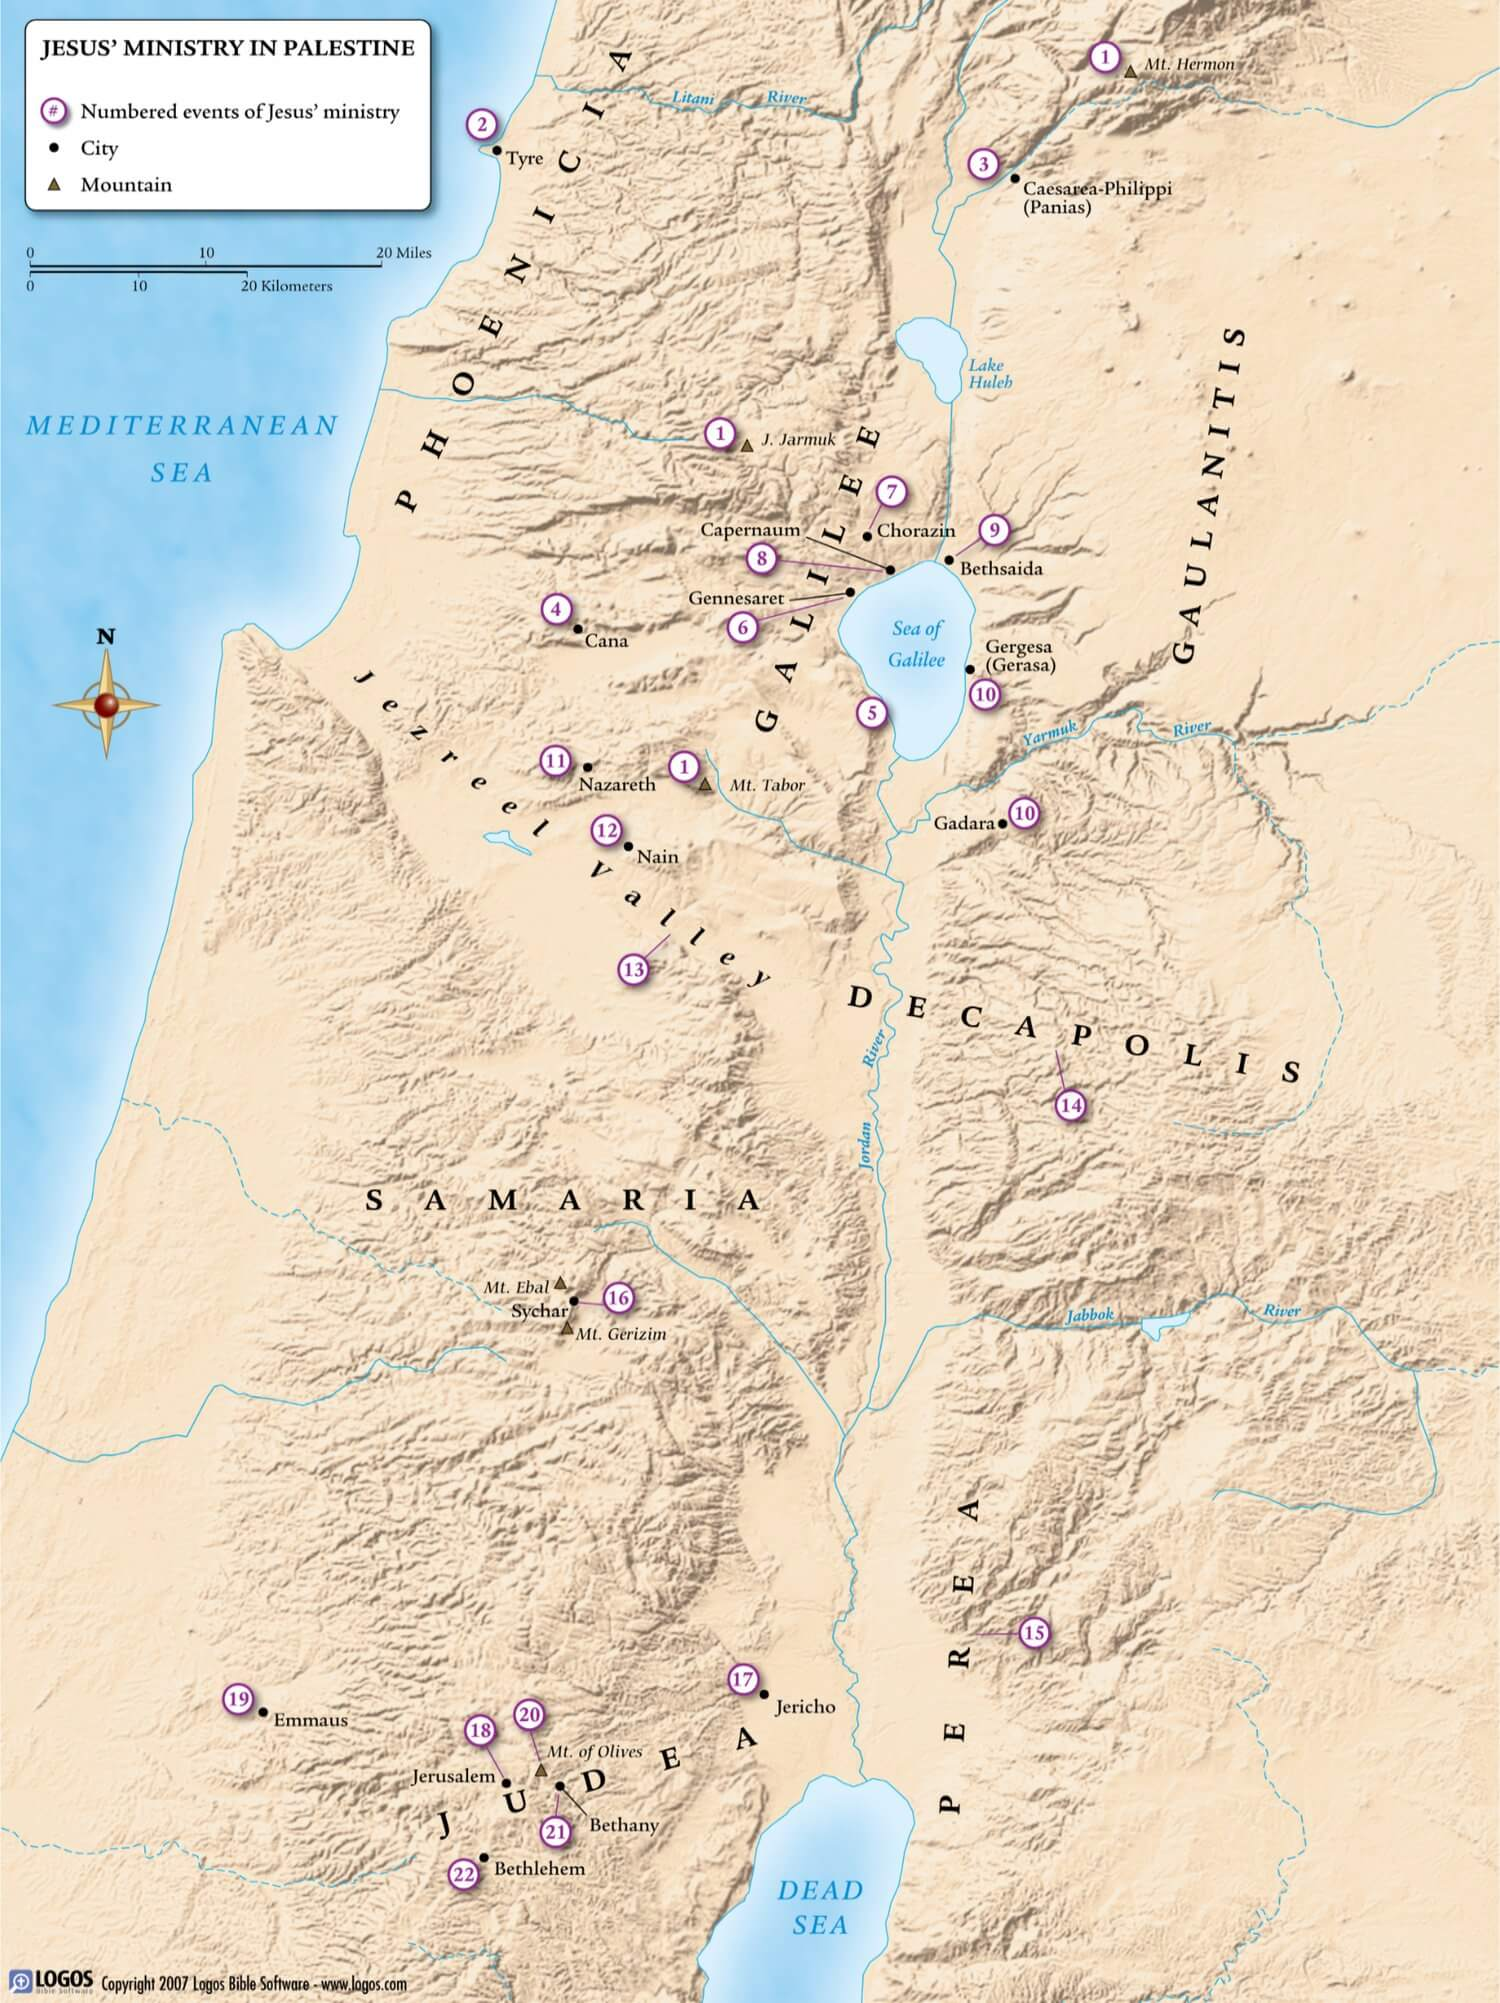 Jesus Ministry in Palestine map